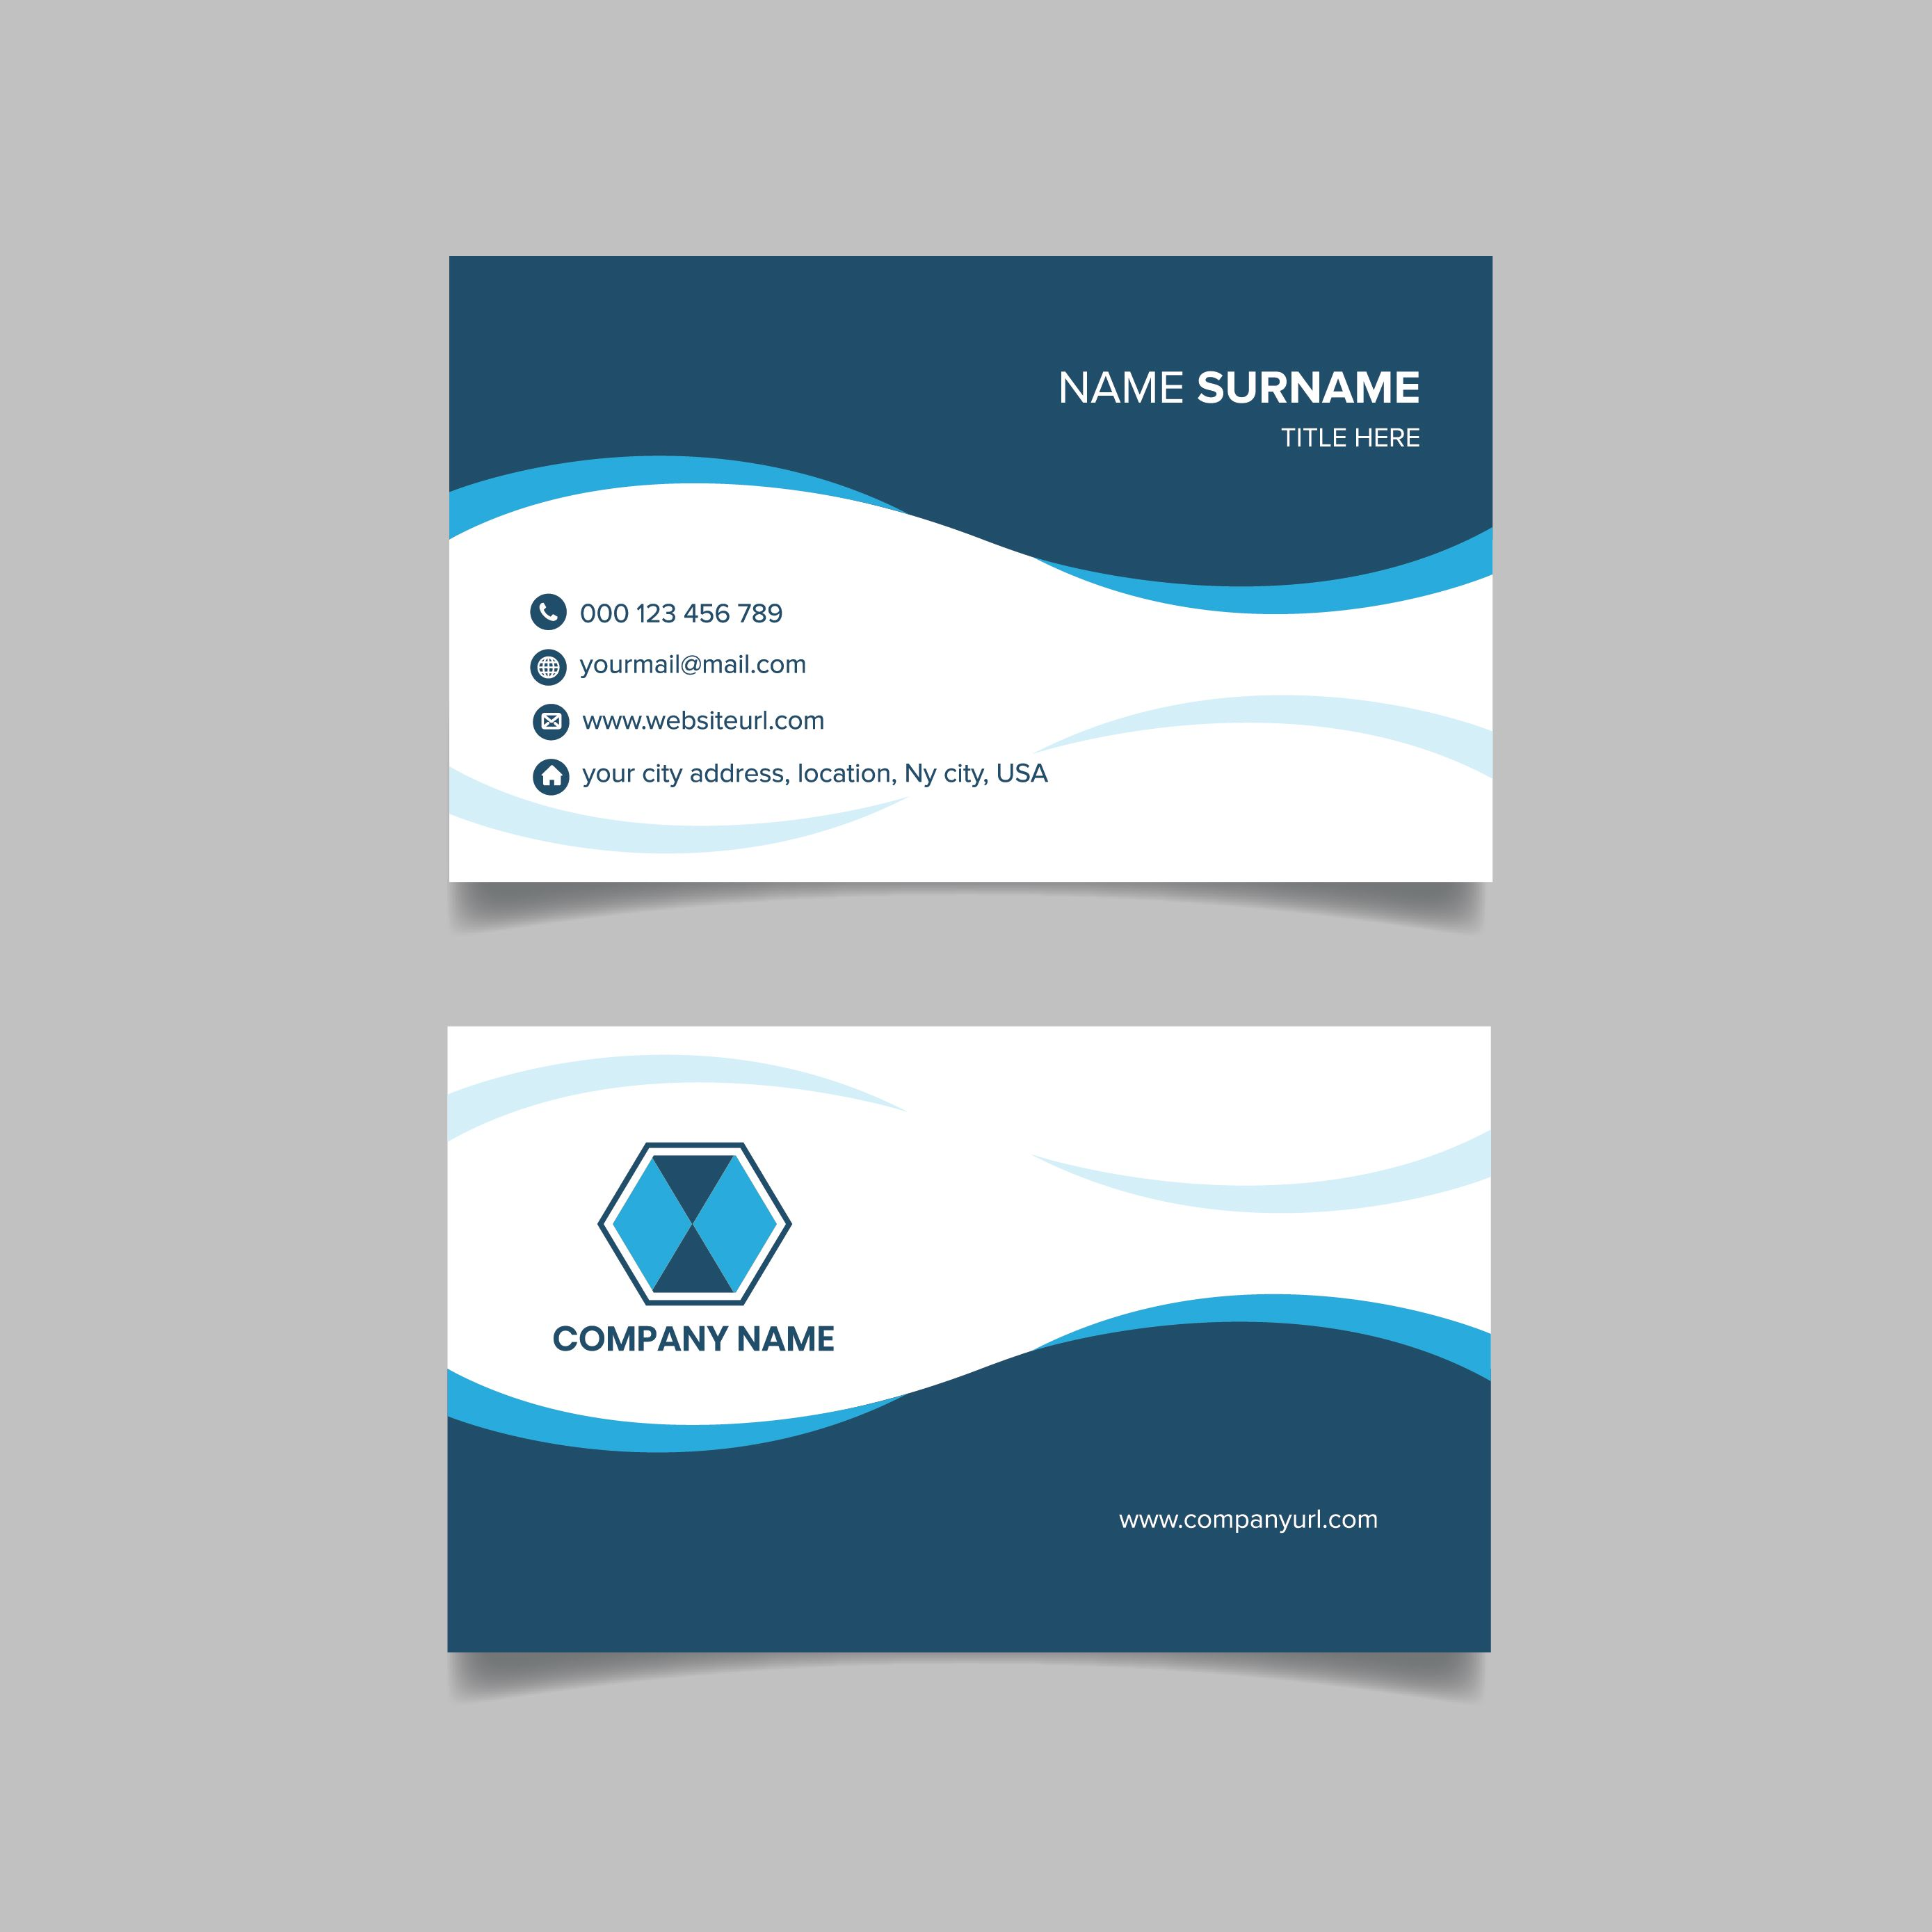 Business Card Double Sided Business Card Stock Modern Business Cards Design Business Card Design